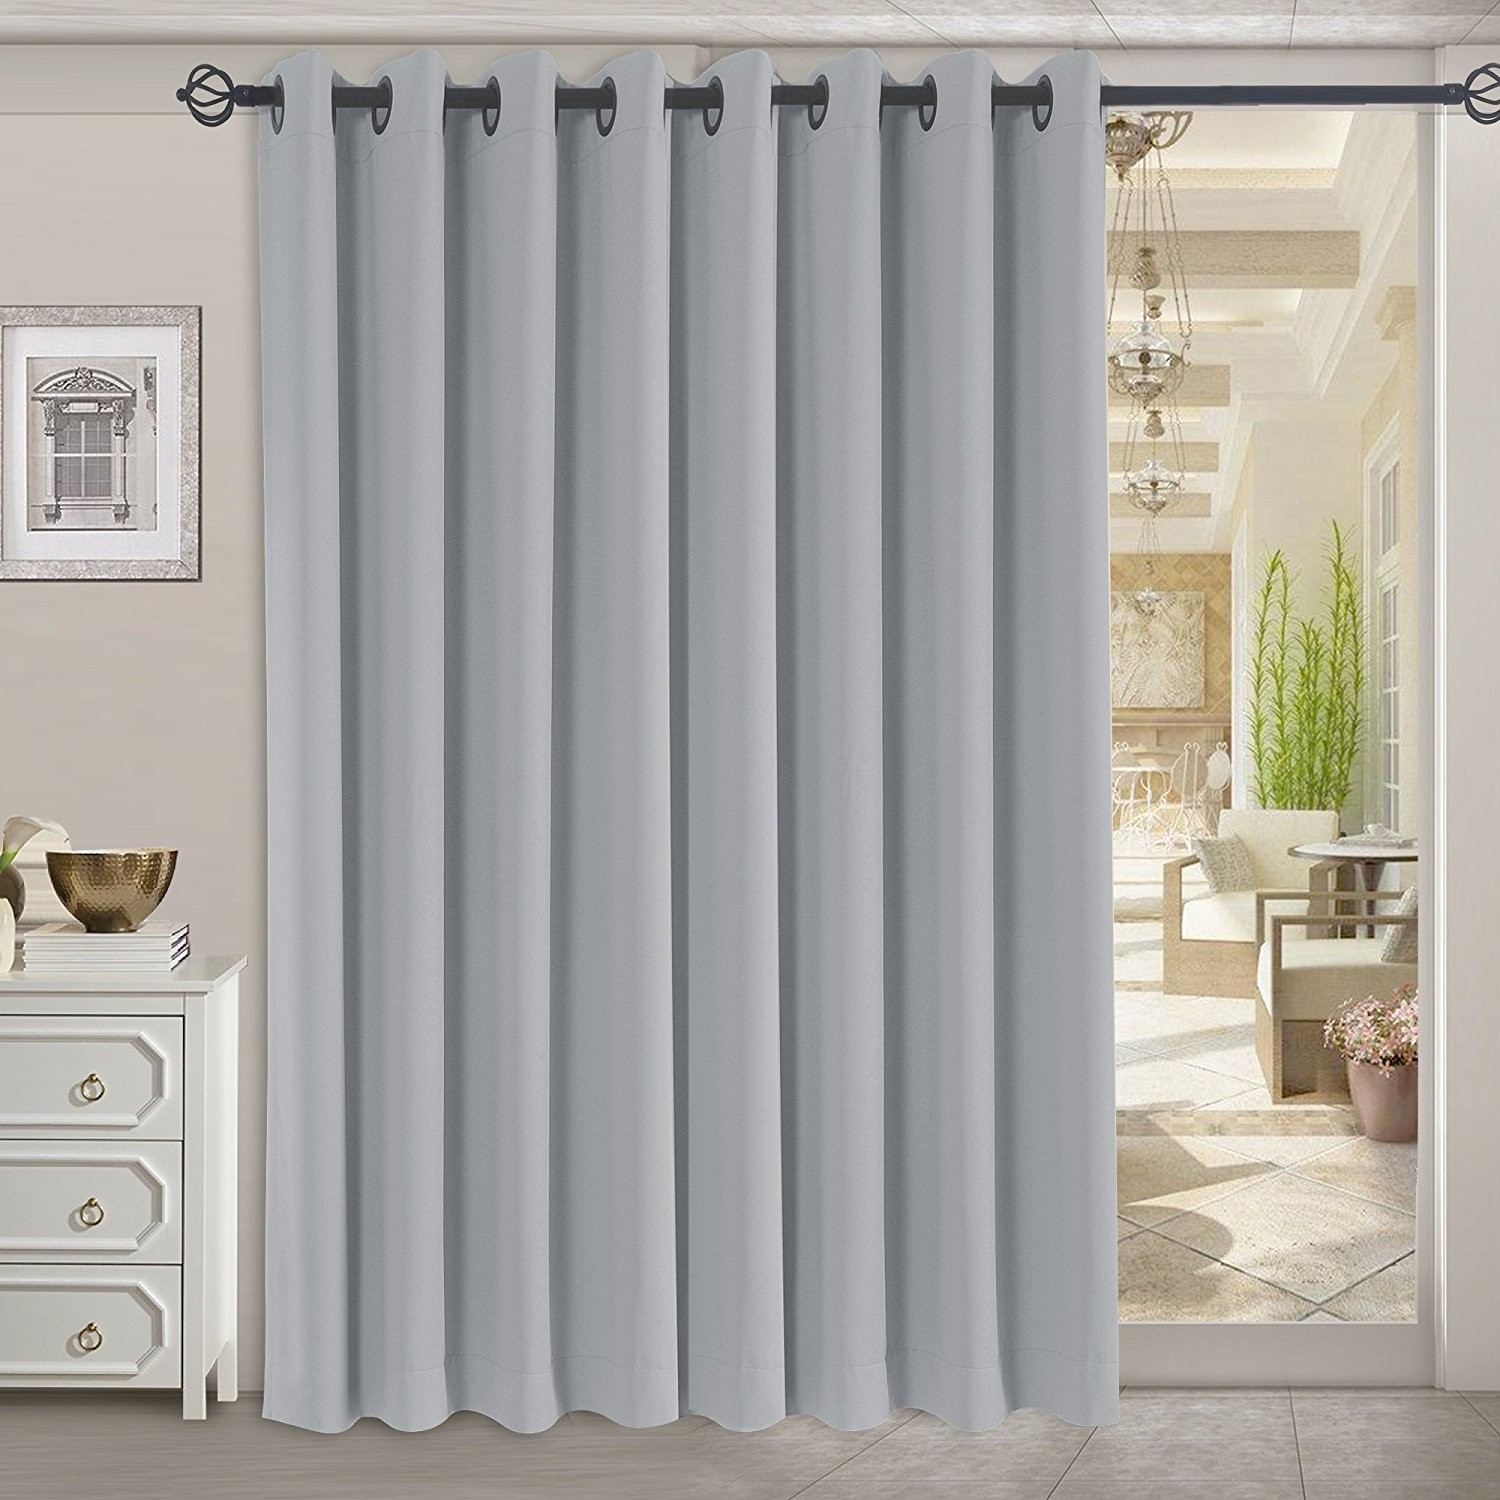 Thermal Door Curtains Curtain Ideas